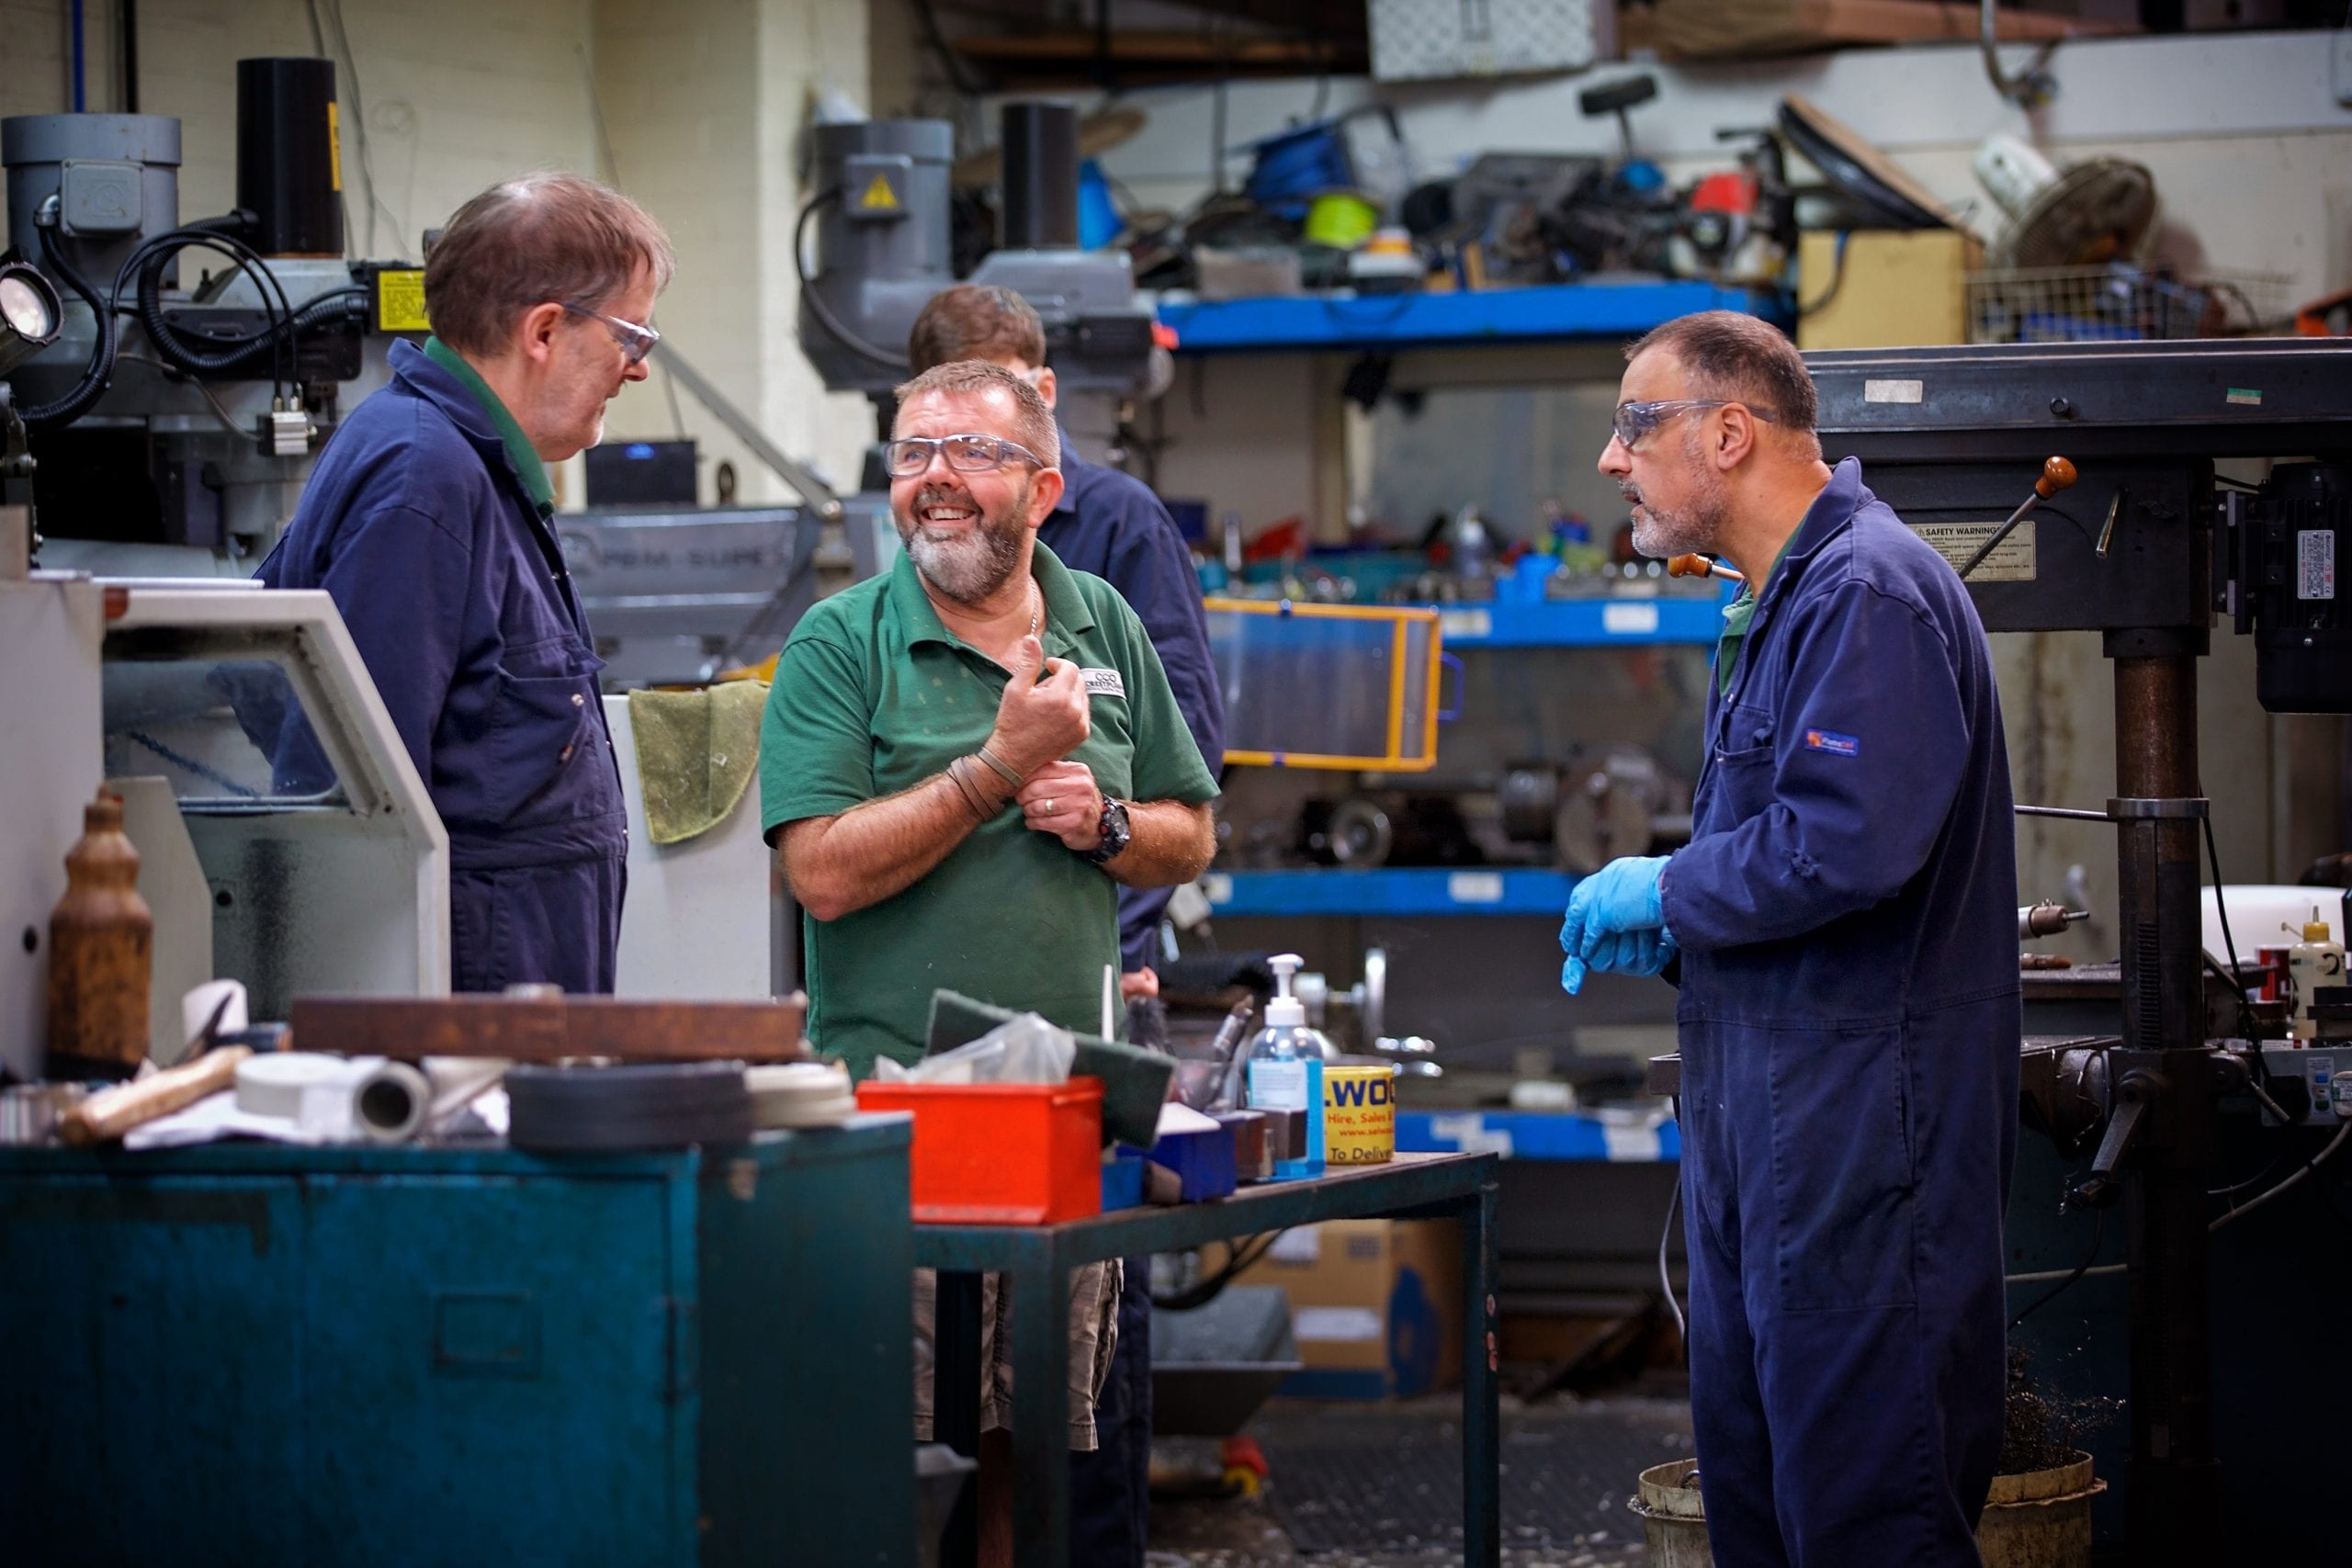 The pump manufacturing team smiling and having a meeting in the workshop